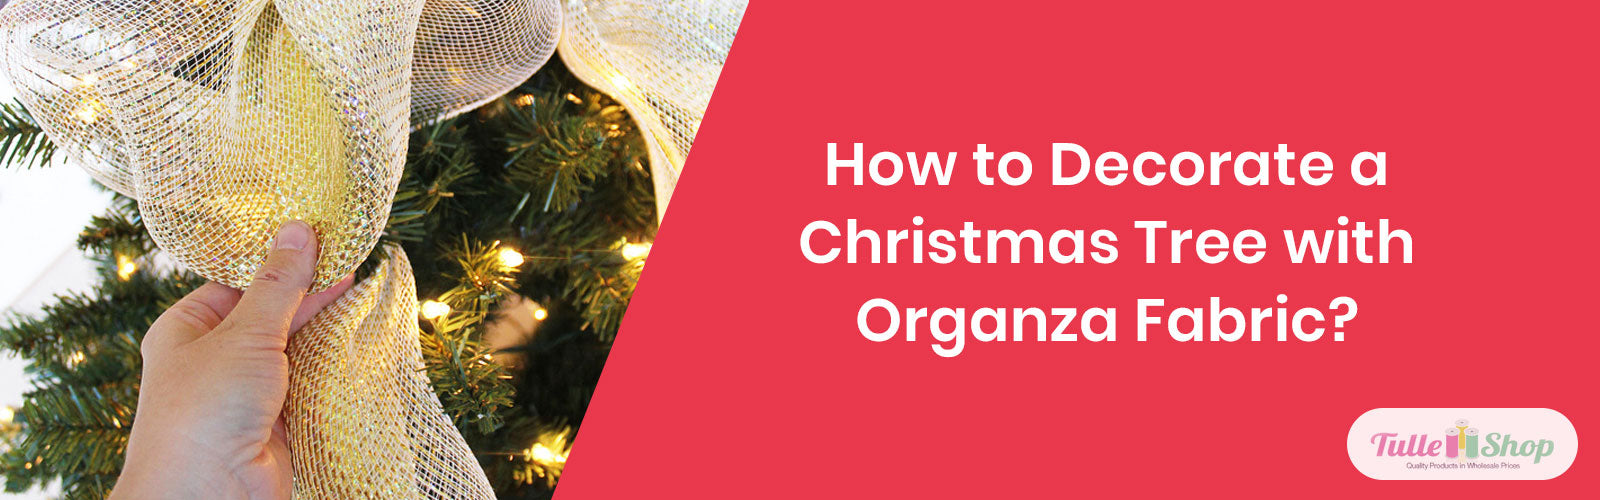 How to Decorate a Christmas Tree with Organza Fabric